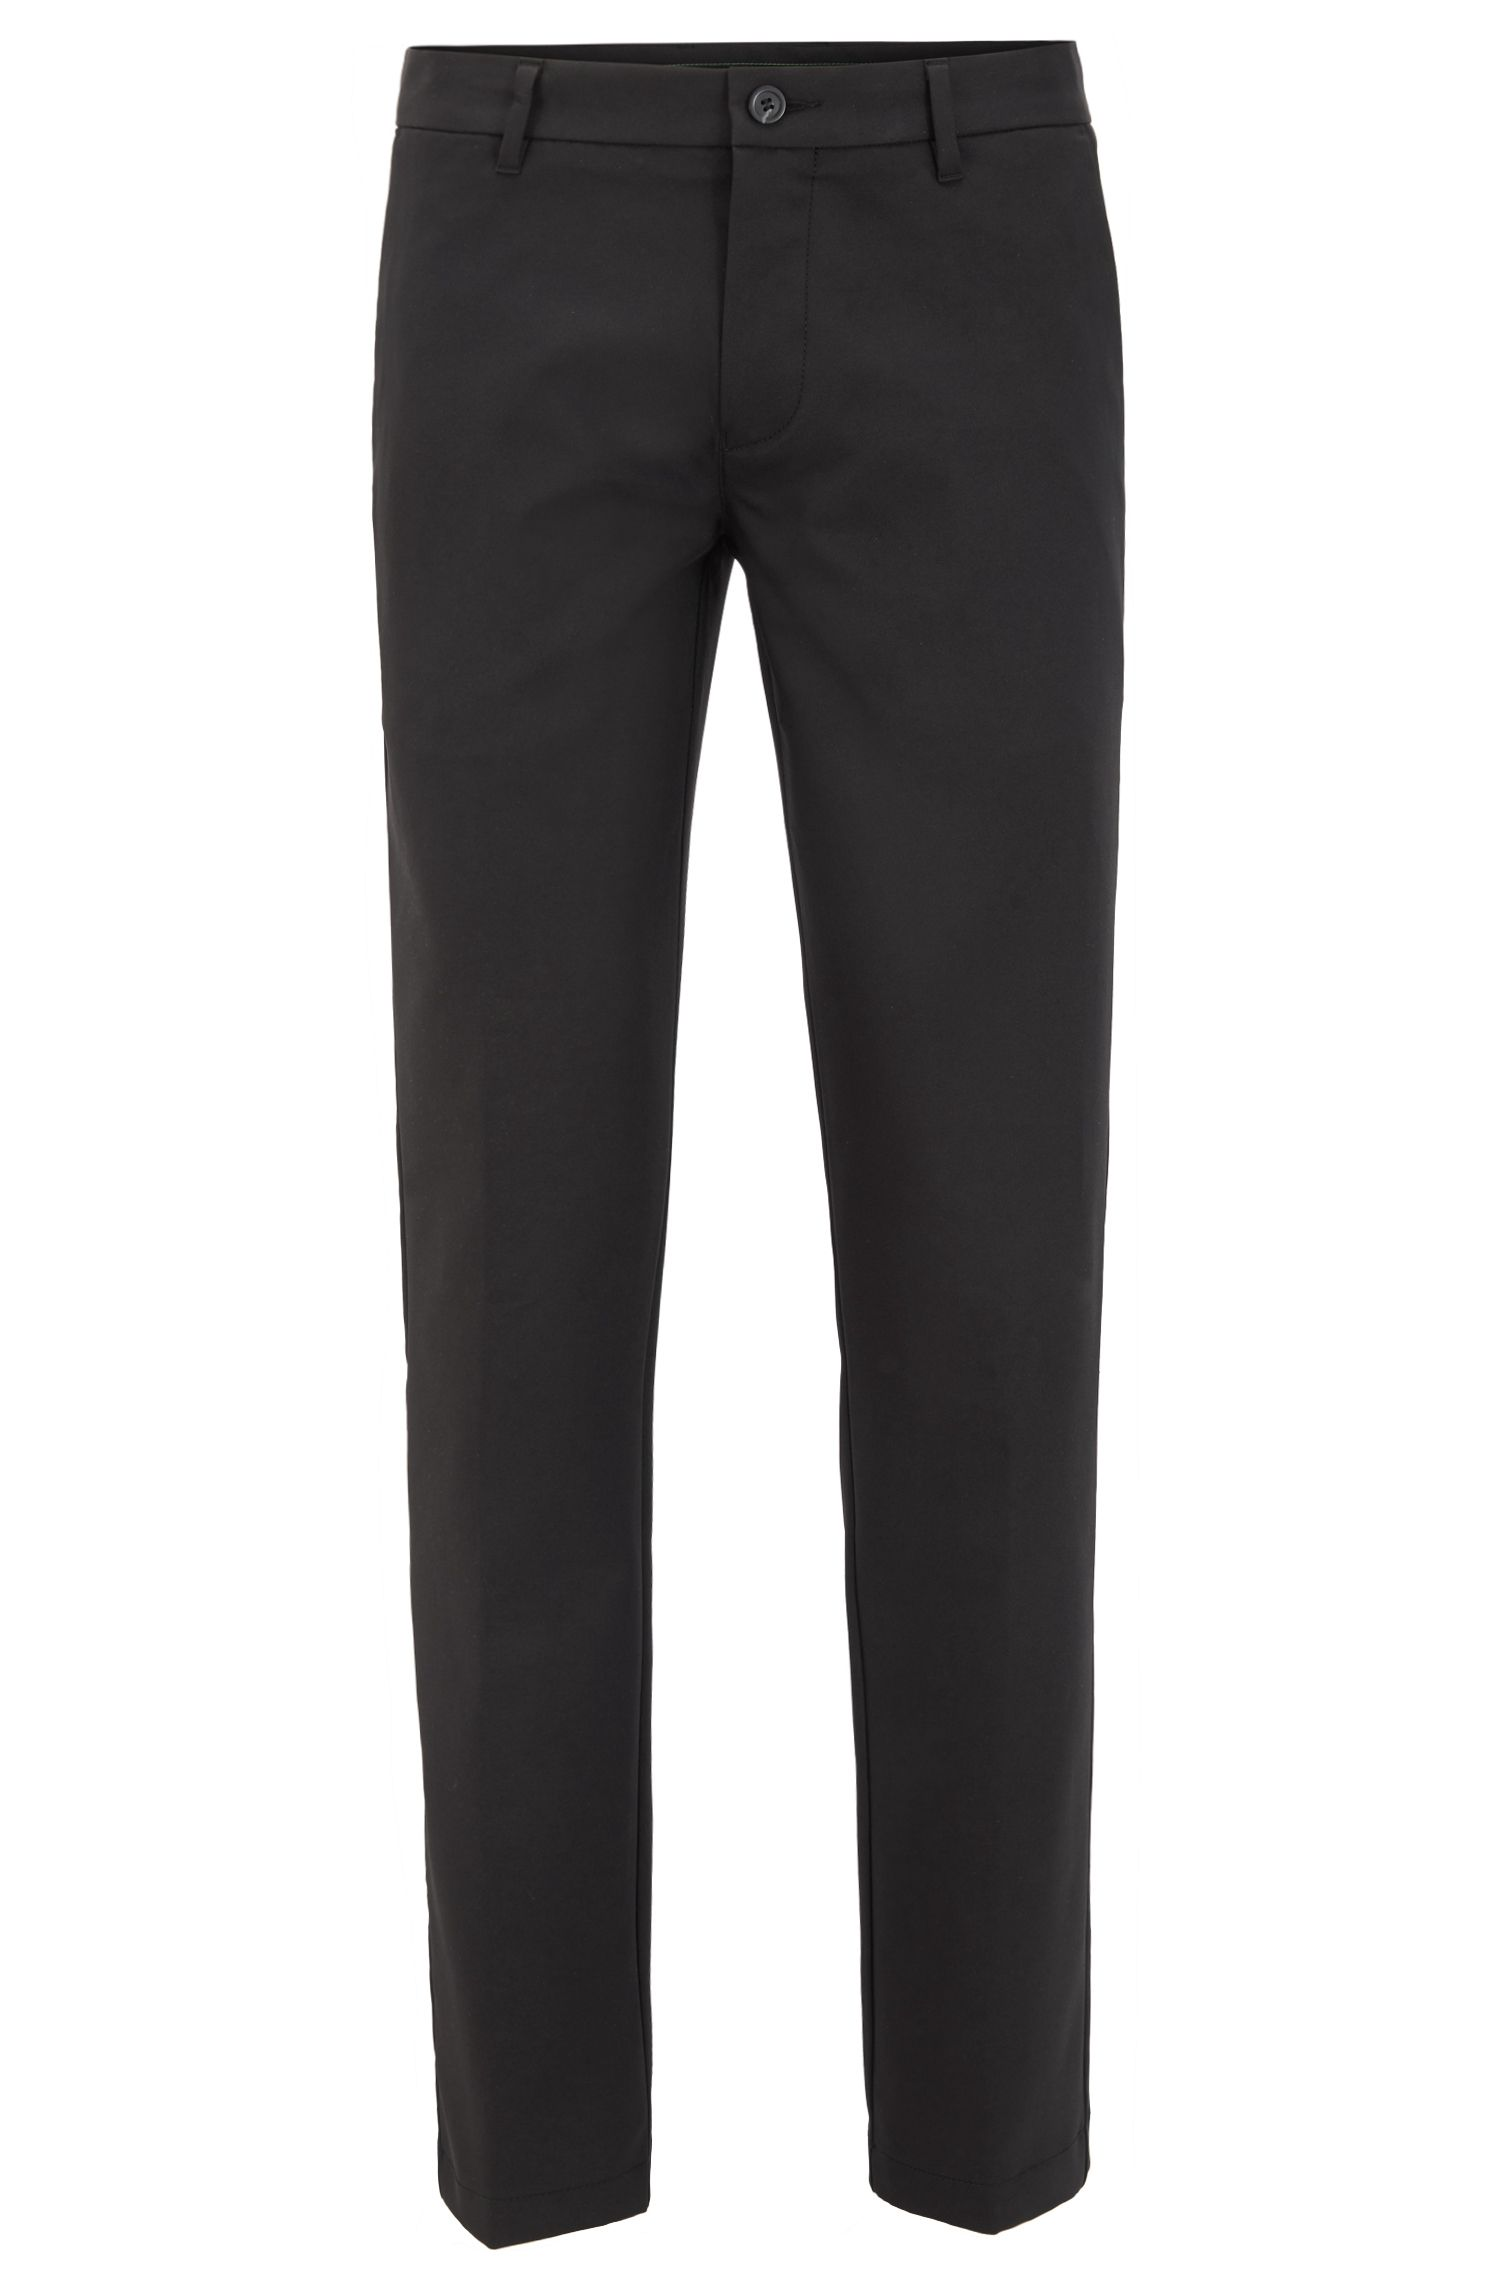 Extra-slim-fit trousers in technical fabric